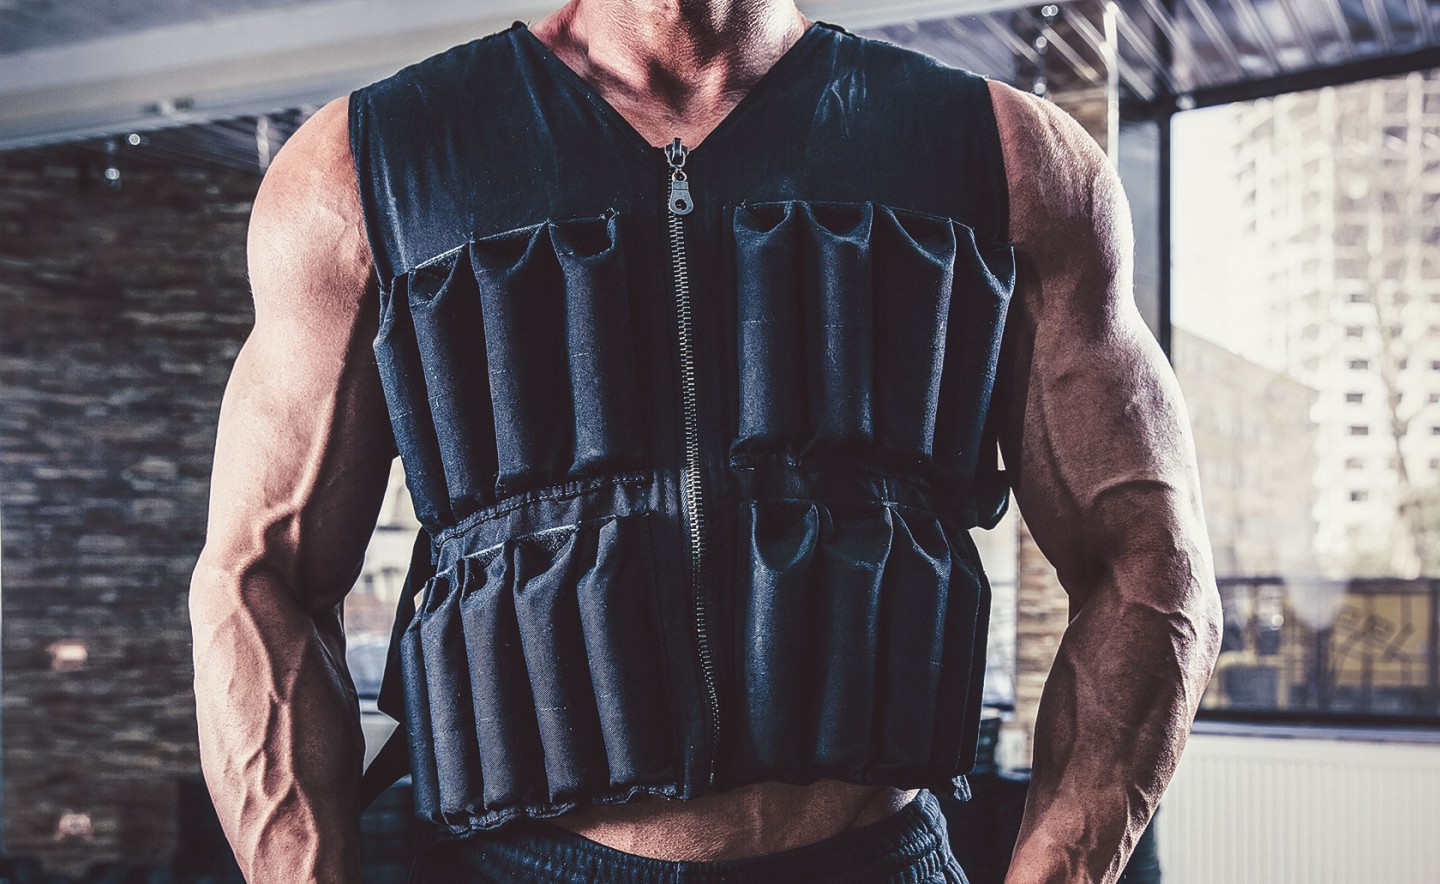 10-Minute Weight Vest Workouts to Maximize Your Results